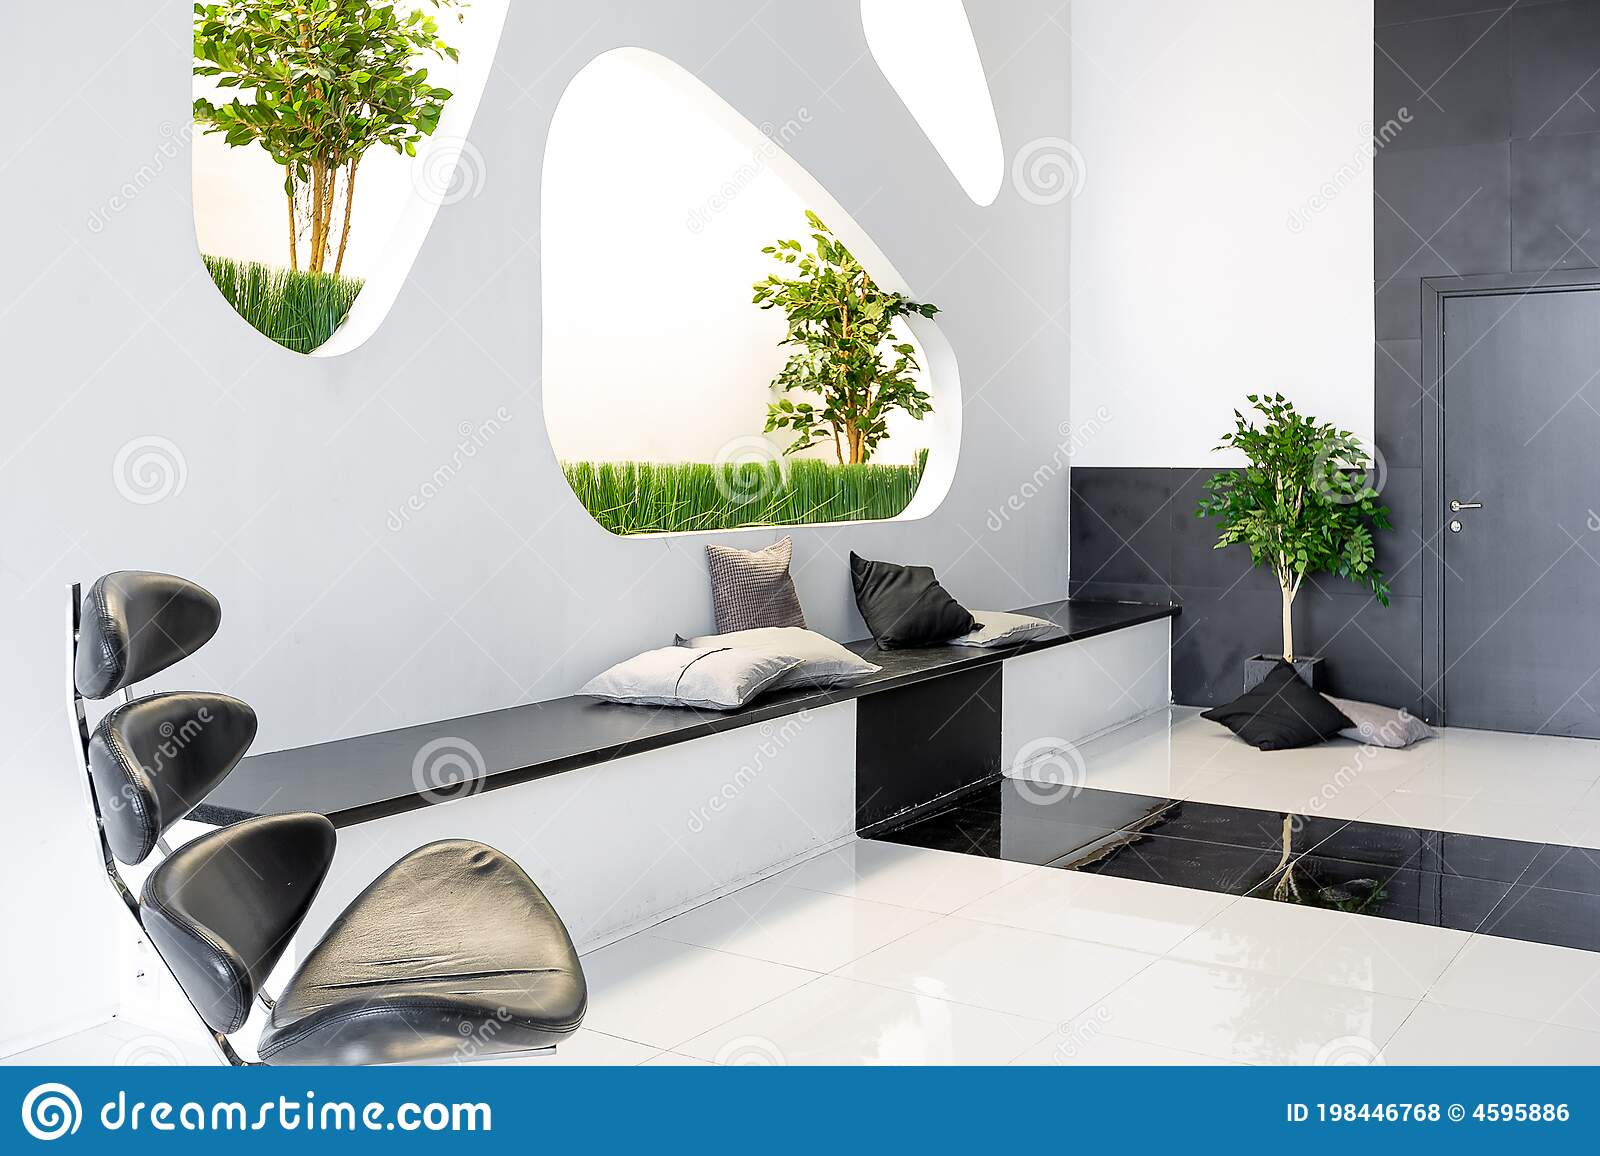 Luxurious Futuristic Trendy Modern Interior In Contrasting Black And White Colors With Interesting Fashionable Black Furniture And Stock Photo Image Of Lifestyle Architecture 198446768